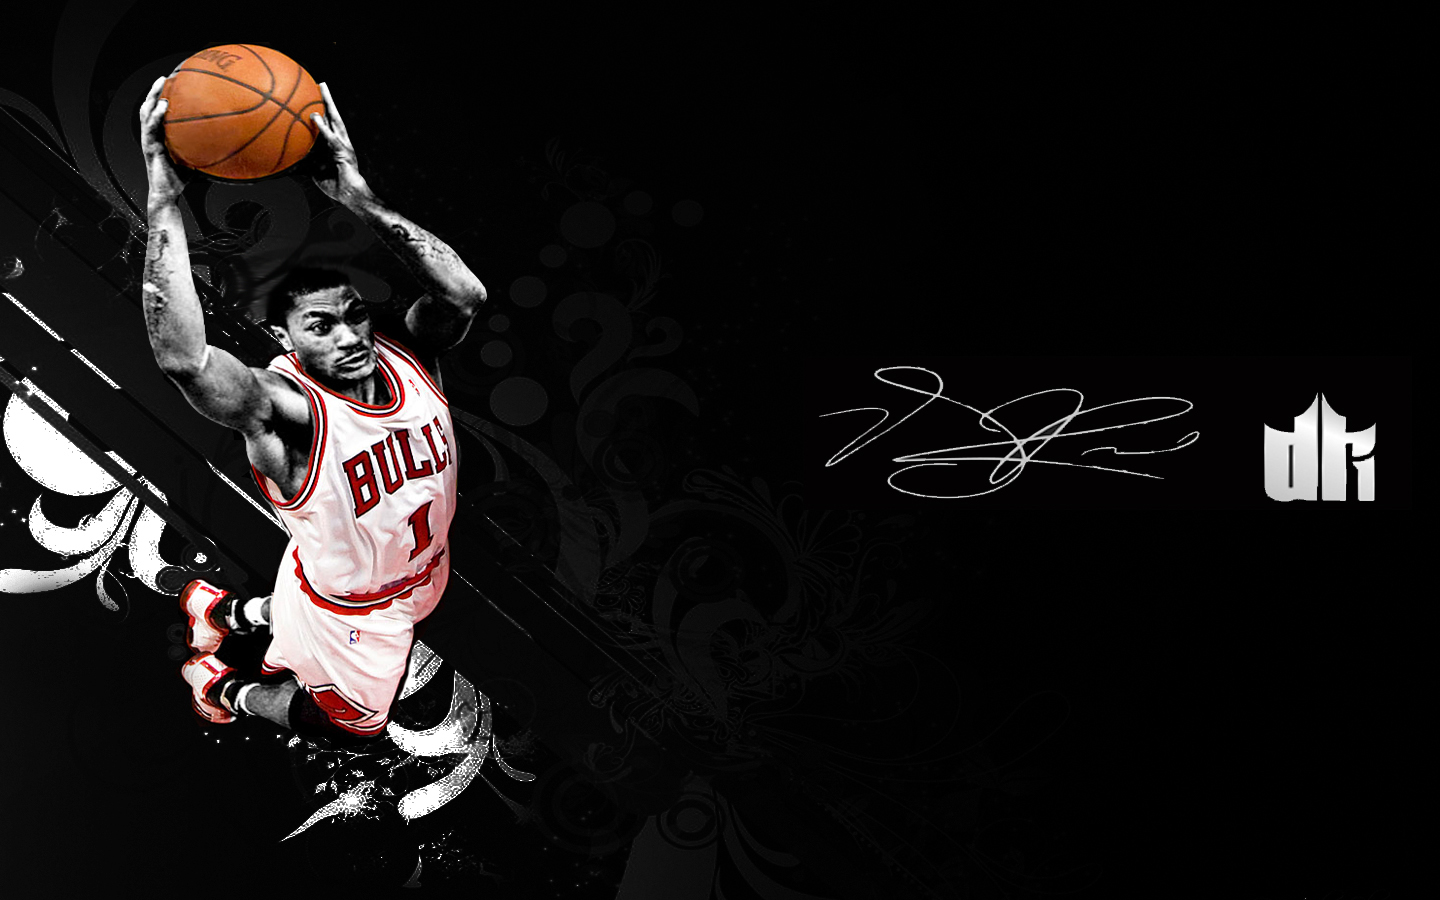 Derrick Rose Basketball Wallpapers For Android Derrick Rose 1440x900